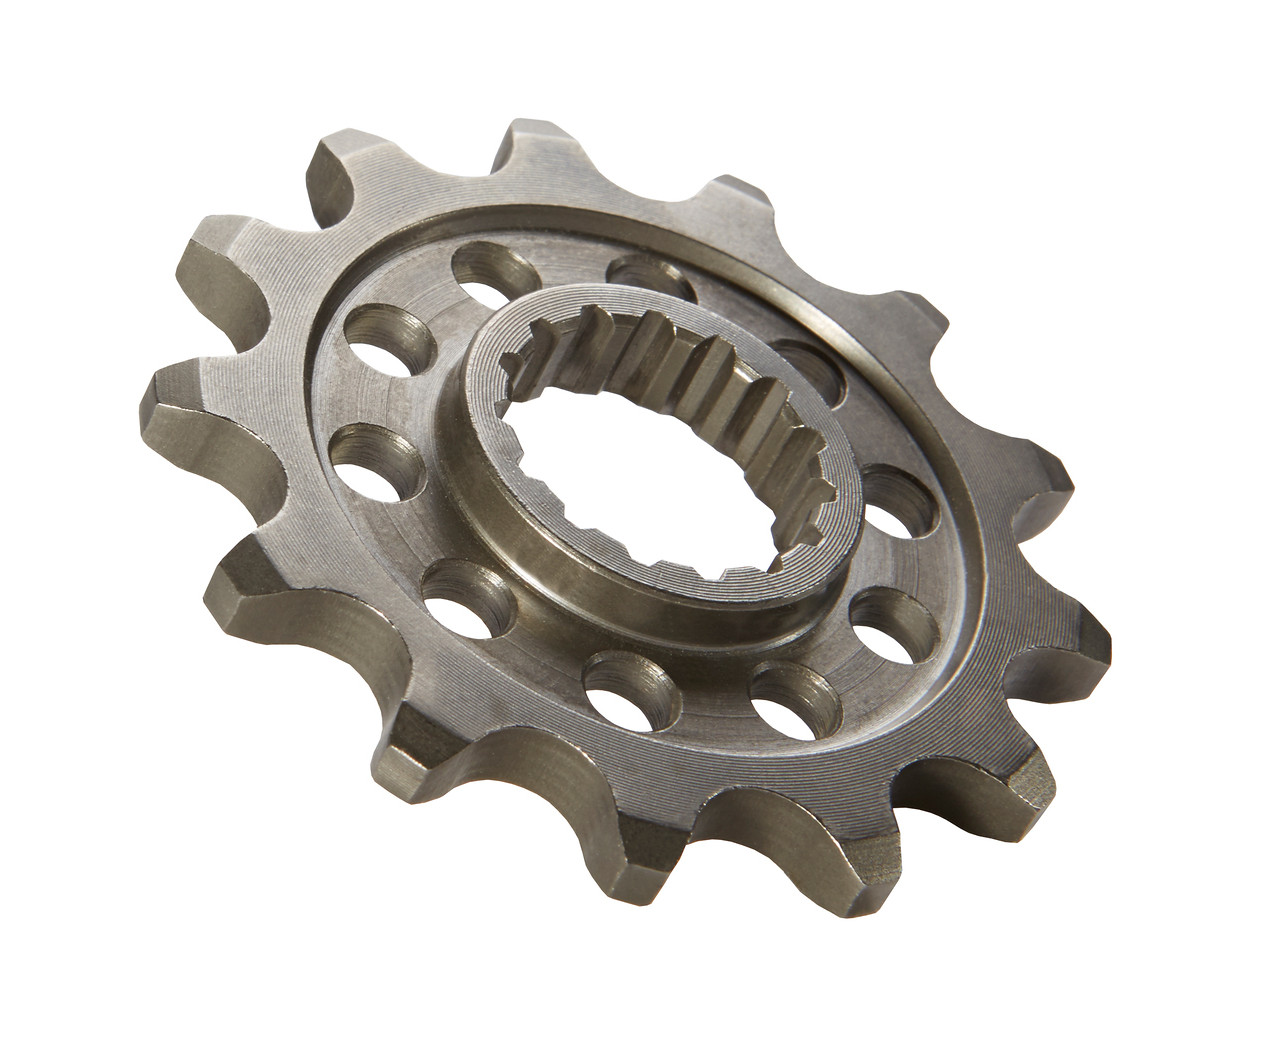 Next Components R-Series Counter Shaft Sprocket